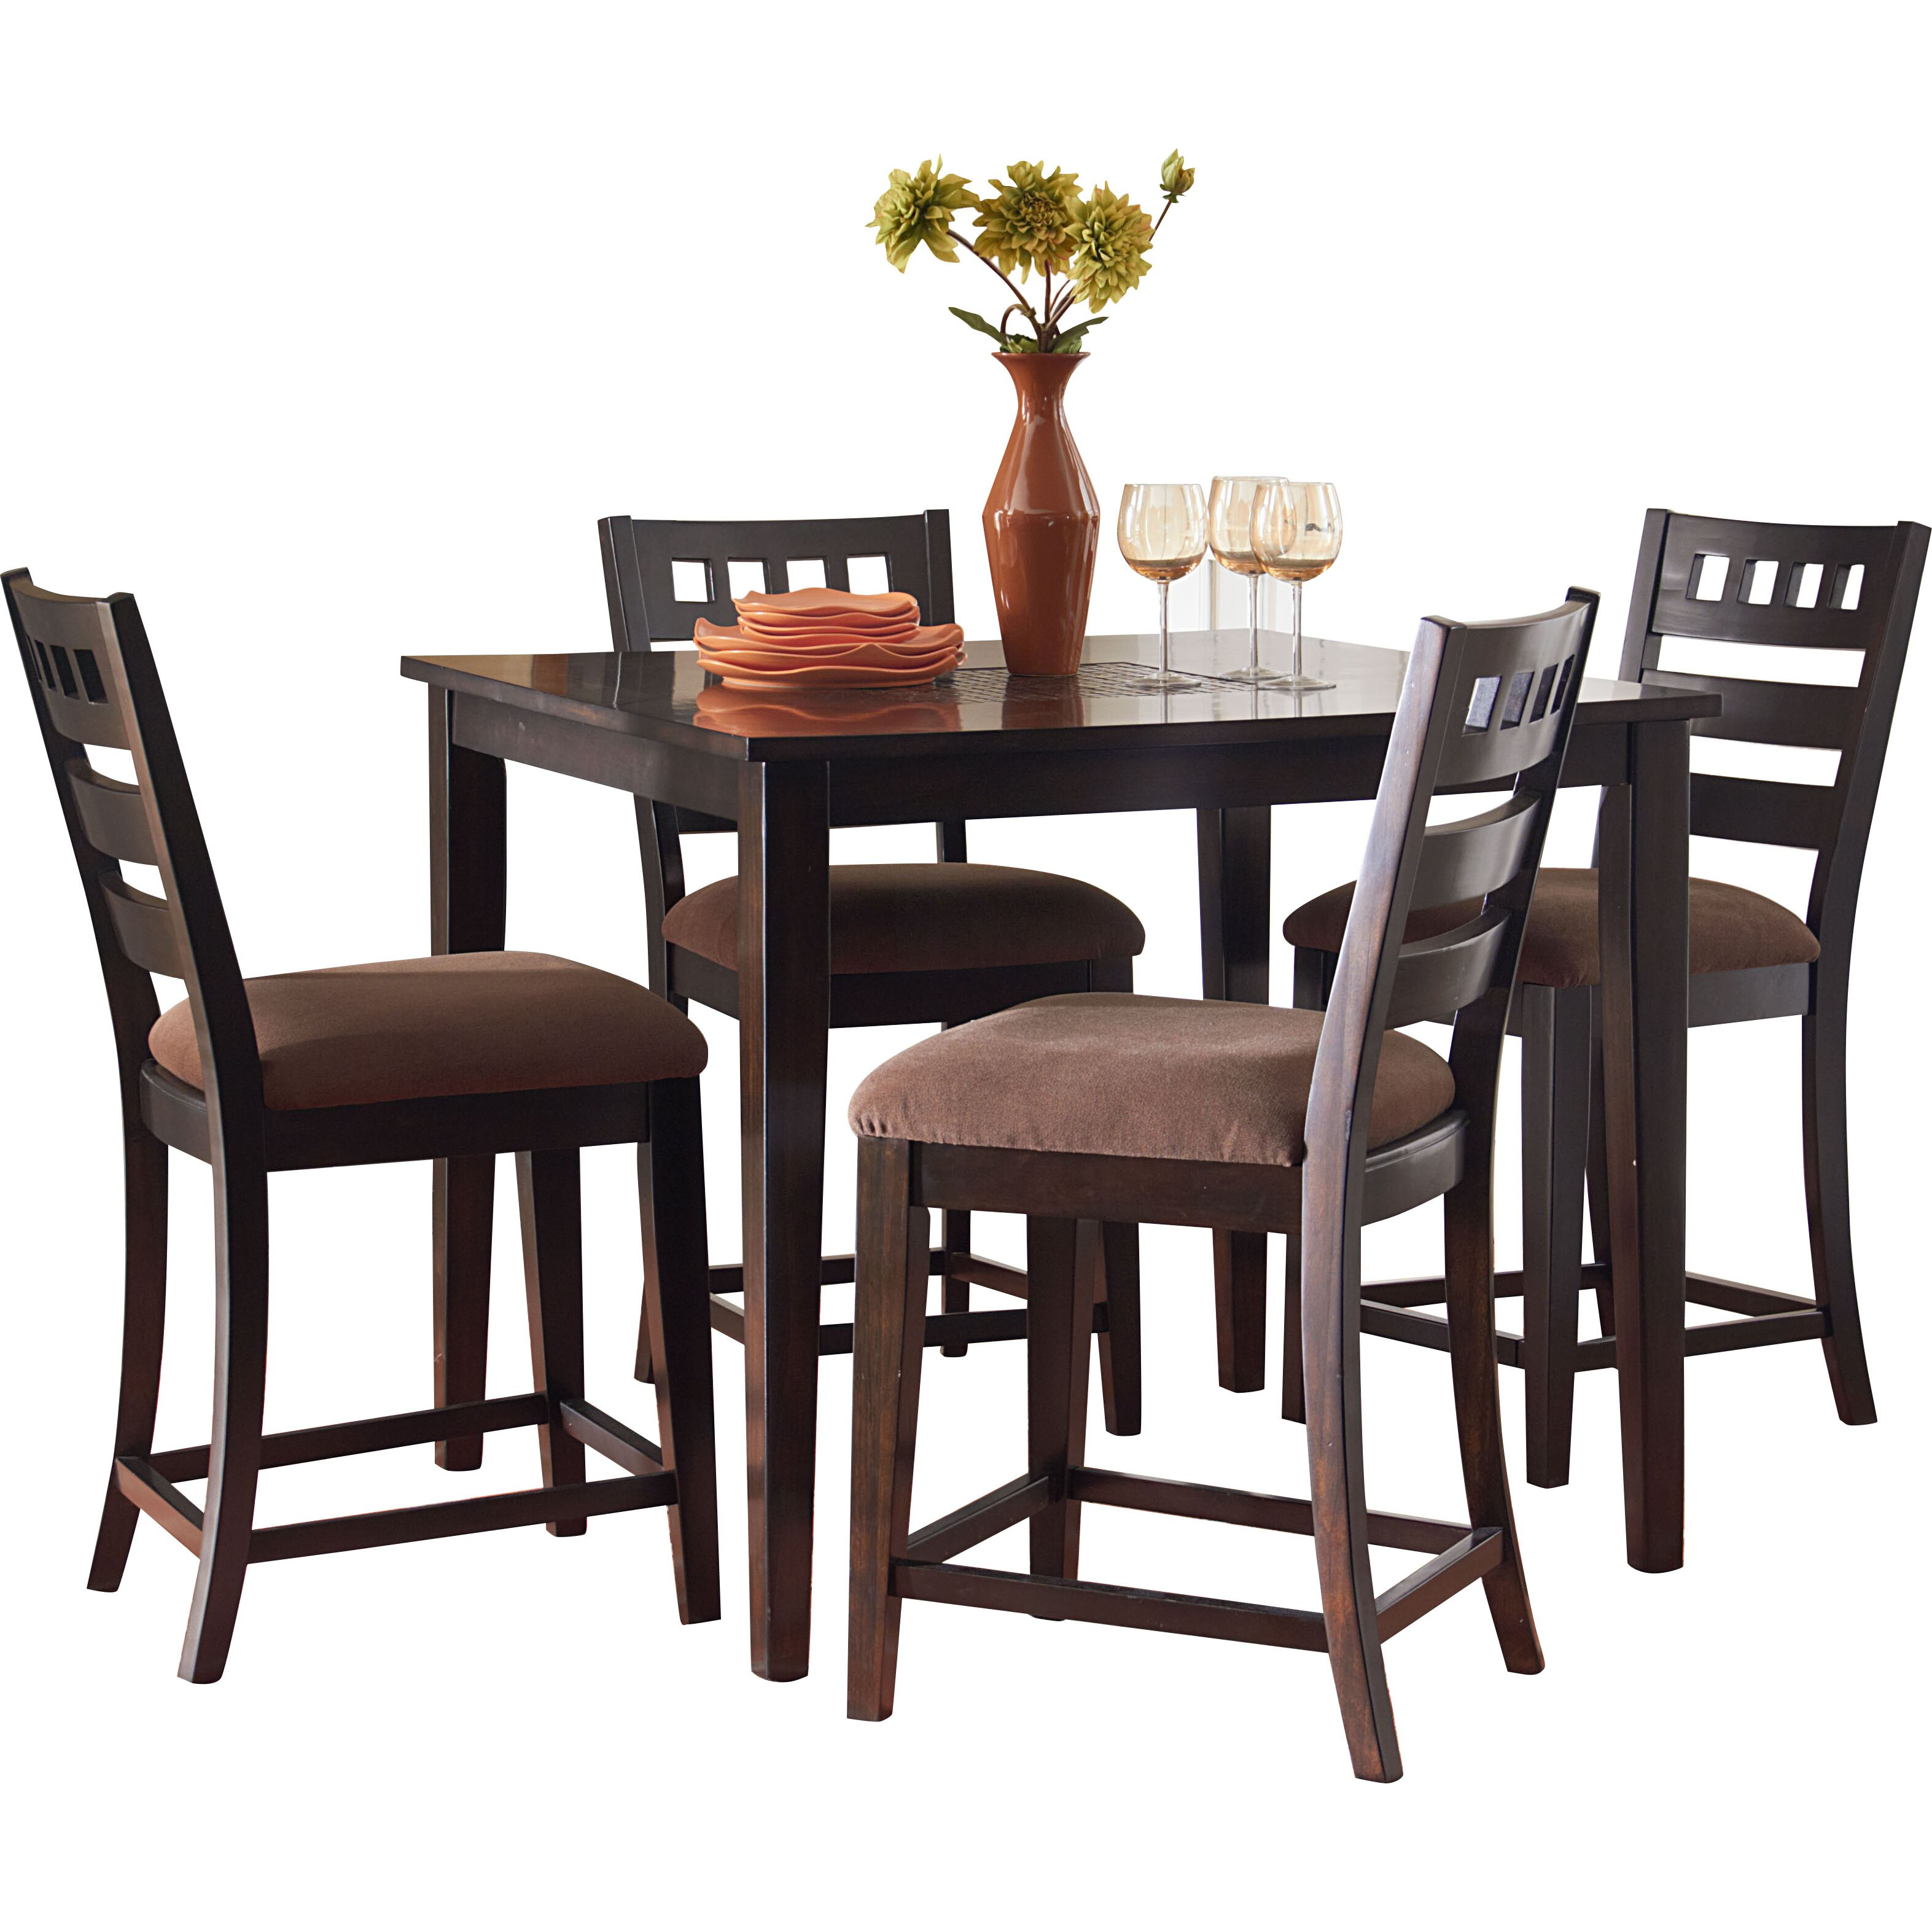 Standard Furniture Sparkle 5 Piece Counter Height Dining Set & Reviews ...